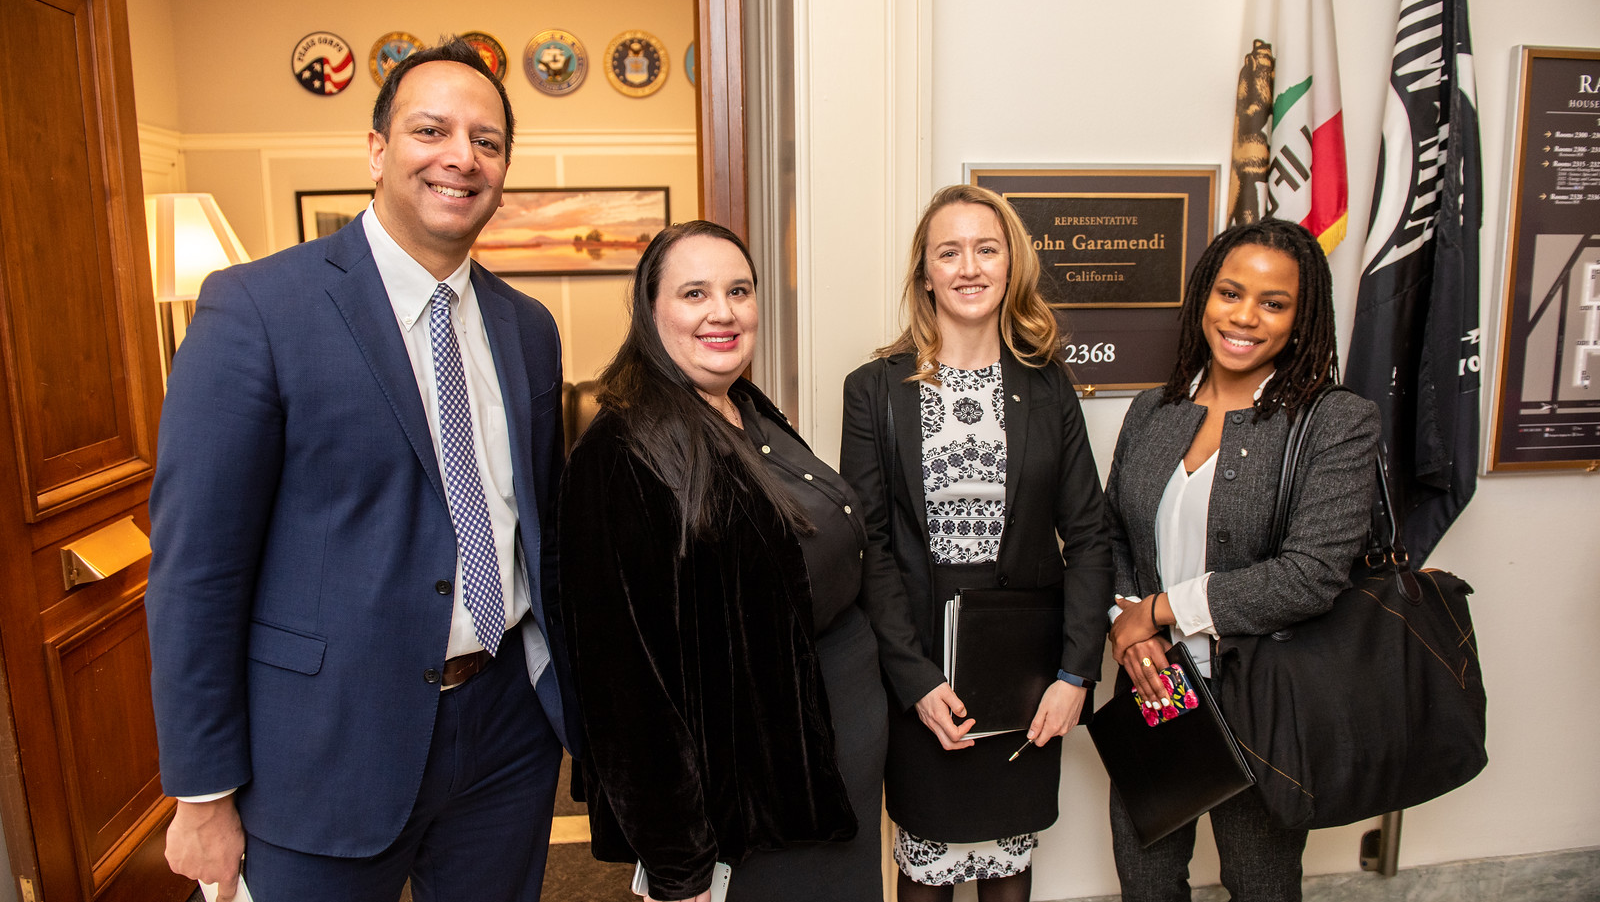 Karun Singh (CAN-ACN), Sasha Luks-Morgan (University of Utah) and 2019 ECPAs Karen Jones and Enitan Marcelle meet with SfN Advocates and Coalition Partners outside Rep. John Garamendi's (CA) office.